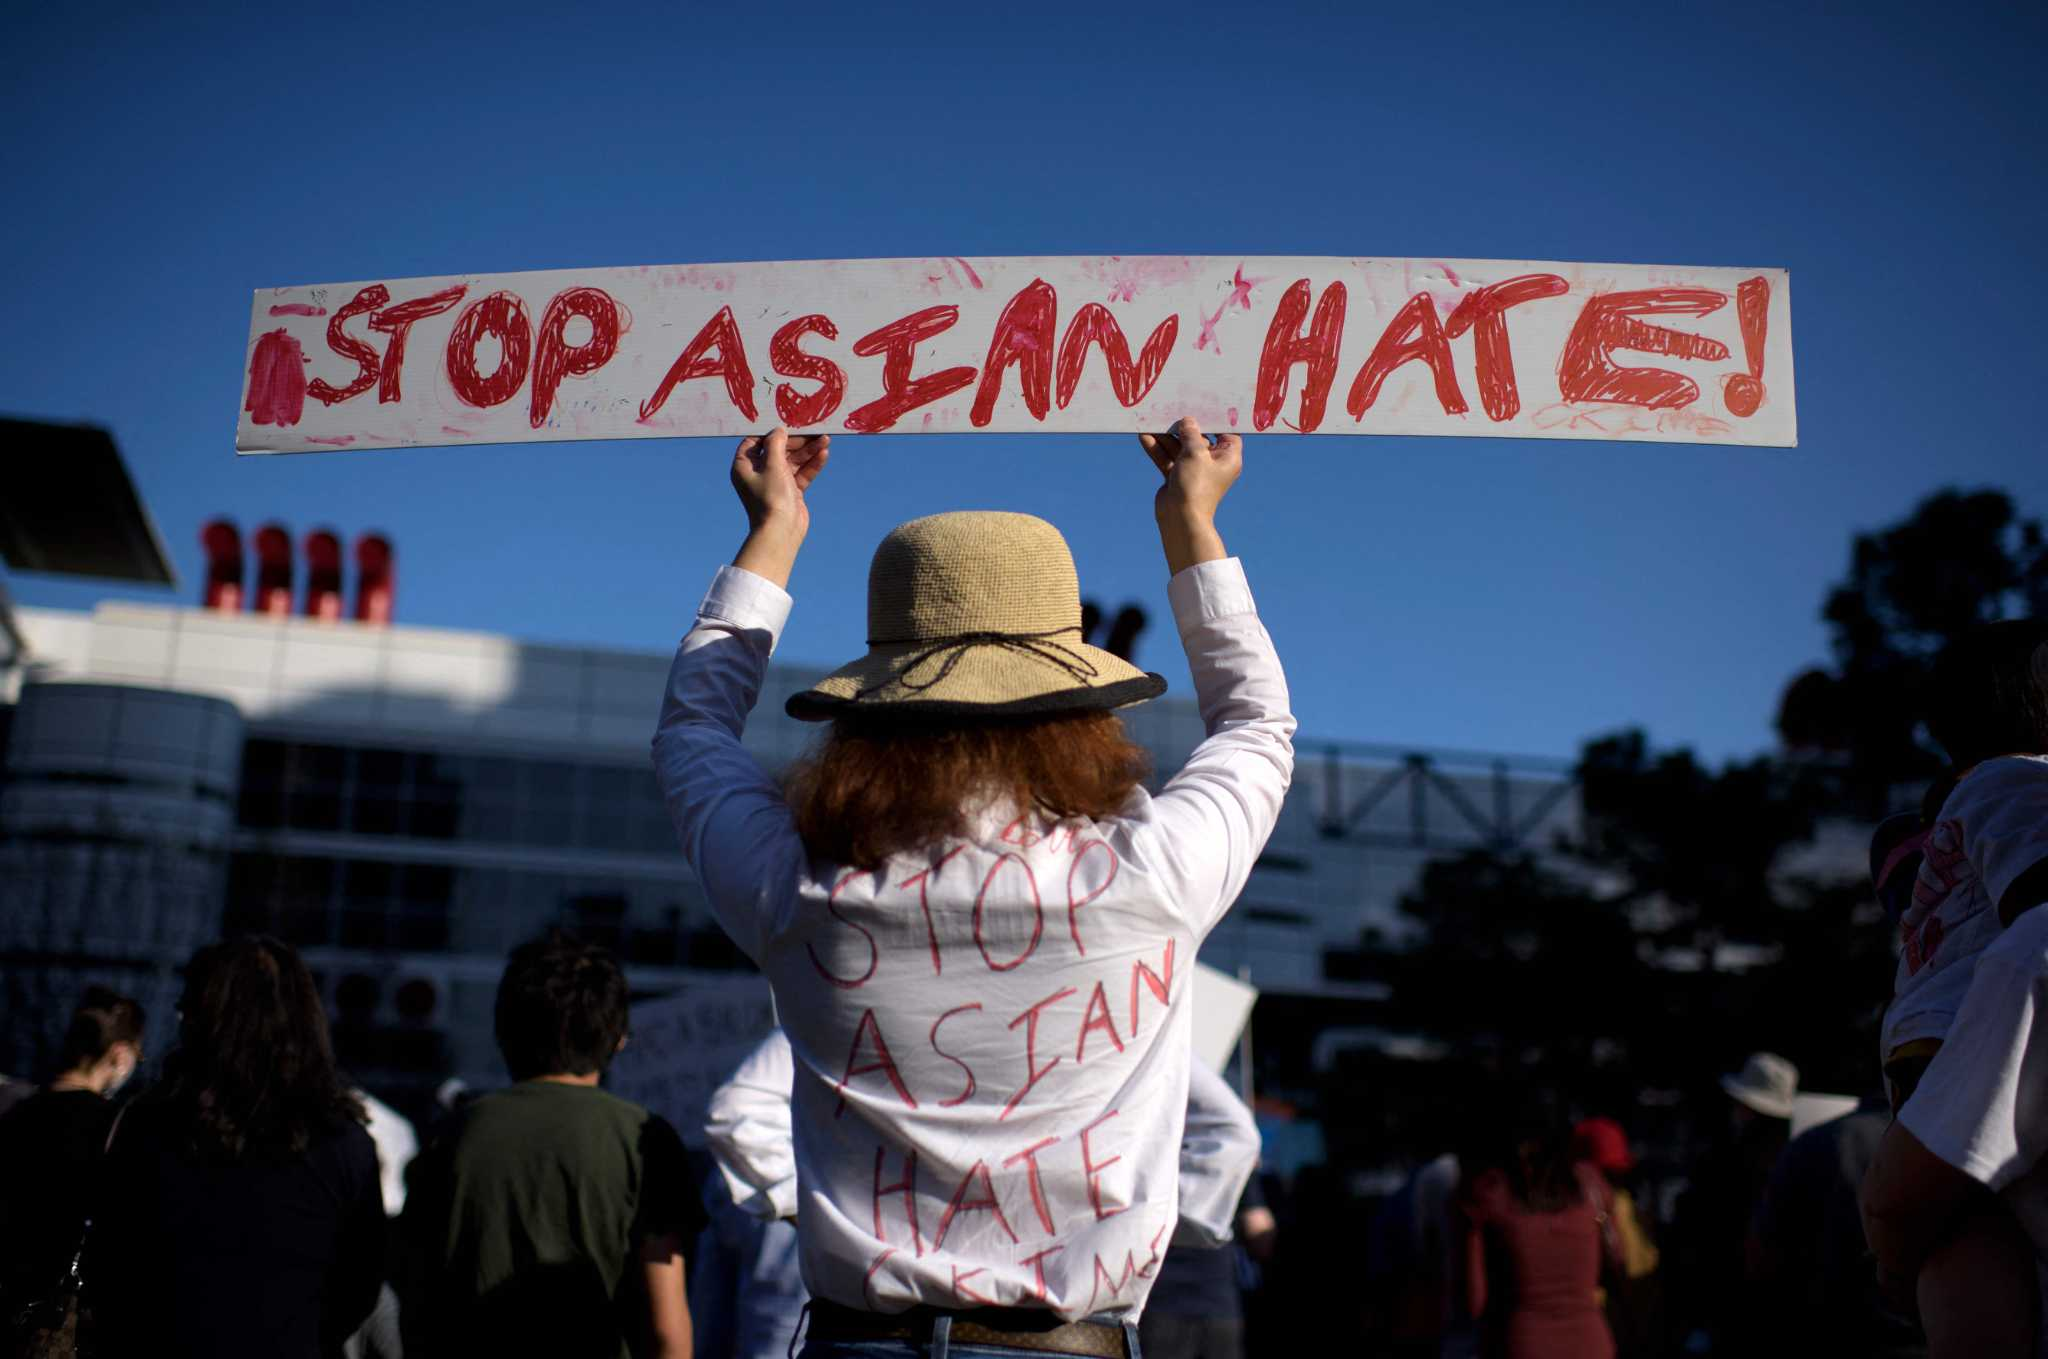 www.houstonchronicle.com: SUNDAY CONVERSATION: With Asian hate crimes rising, Asian Chamber of Commerce leaders speak out